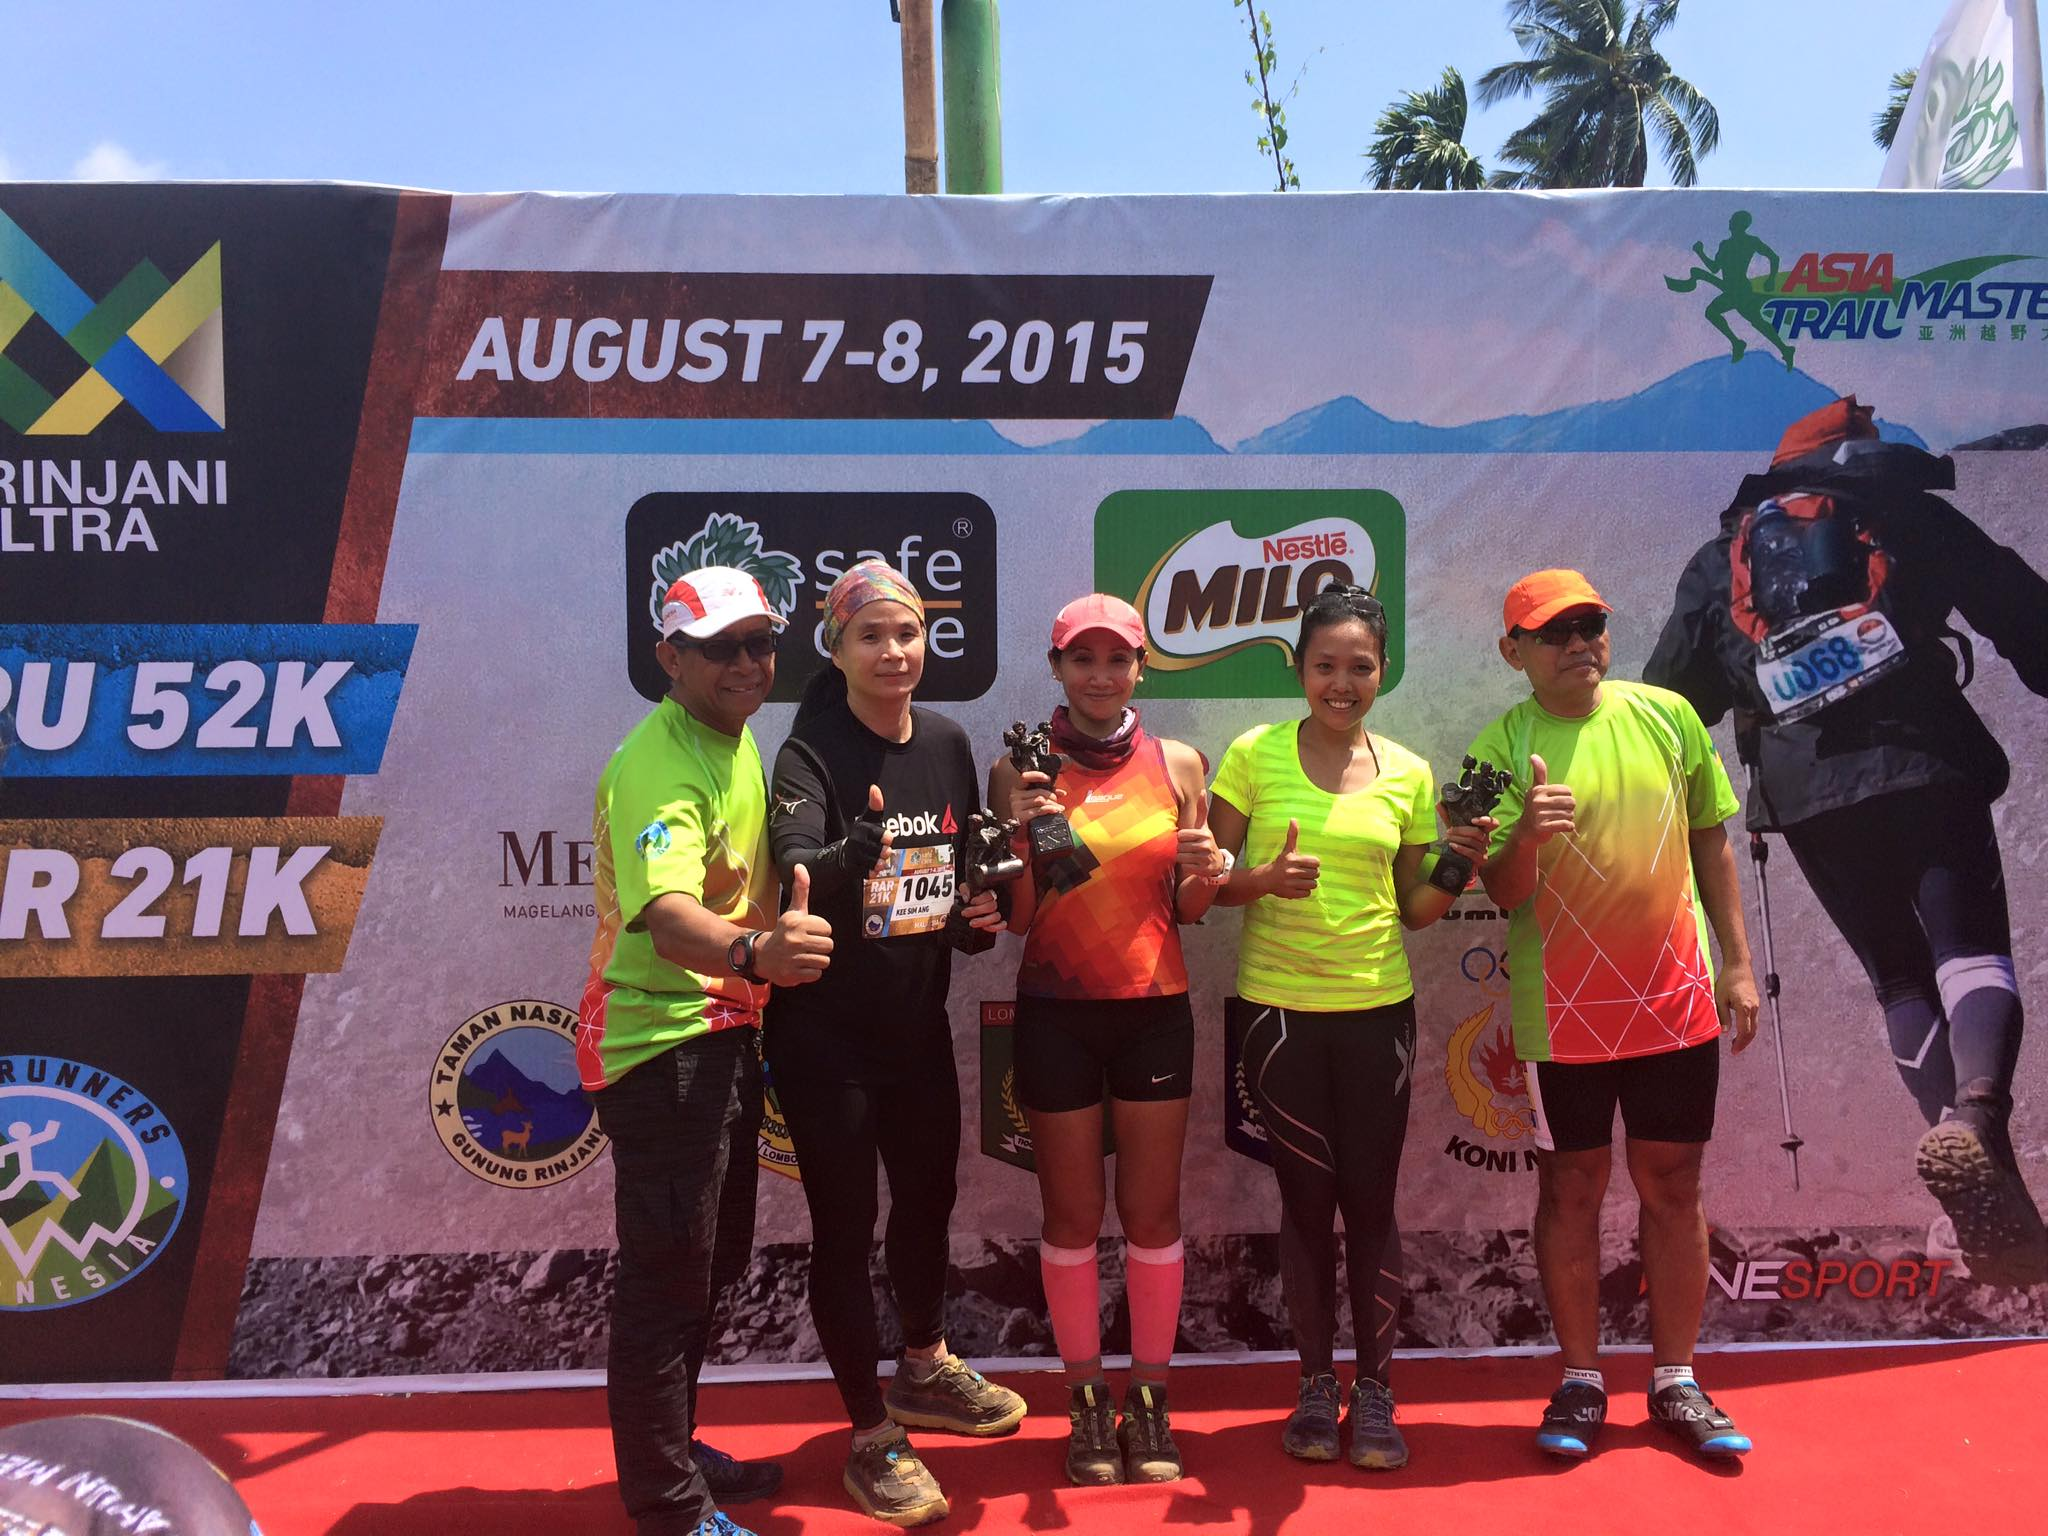 Podium of the women's RAR race with winner Ina Budiyarni in the middle.